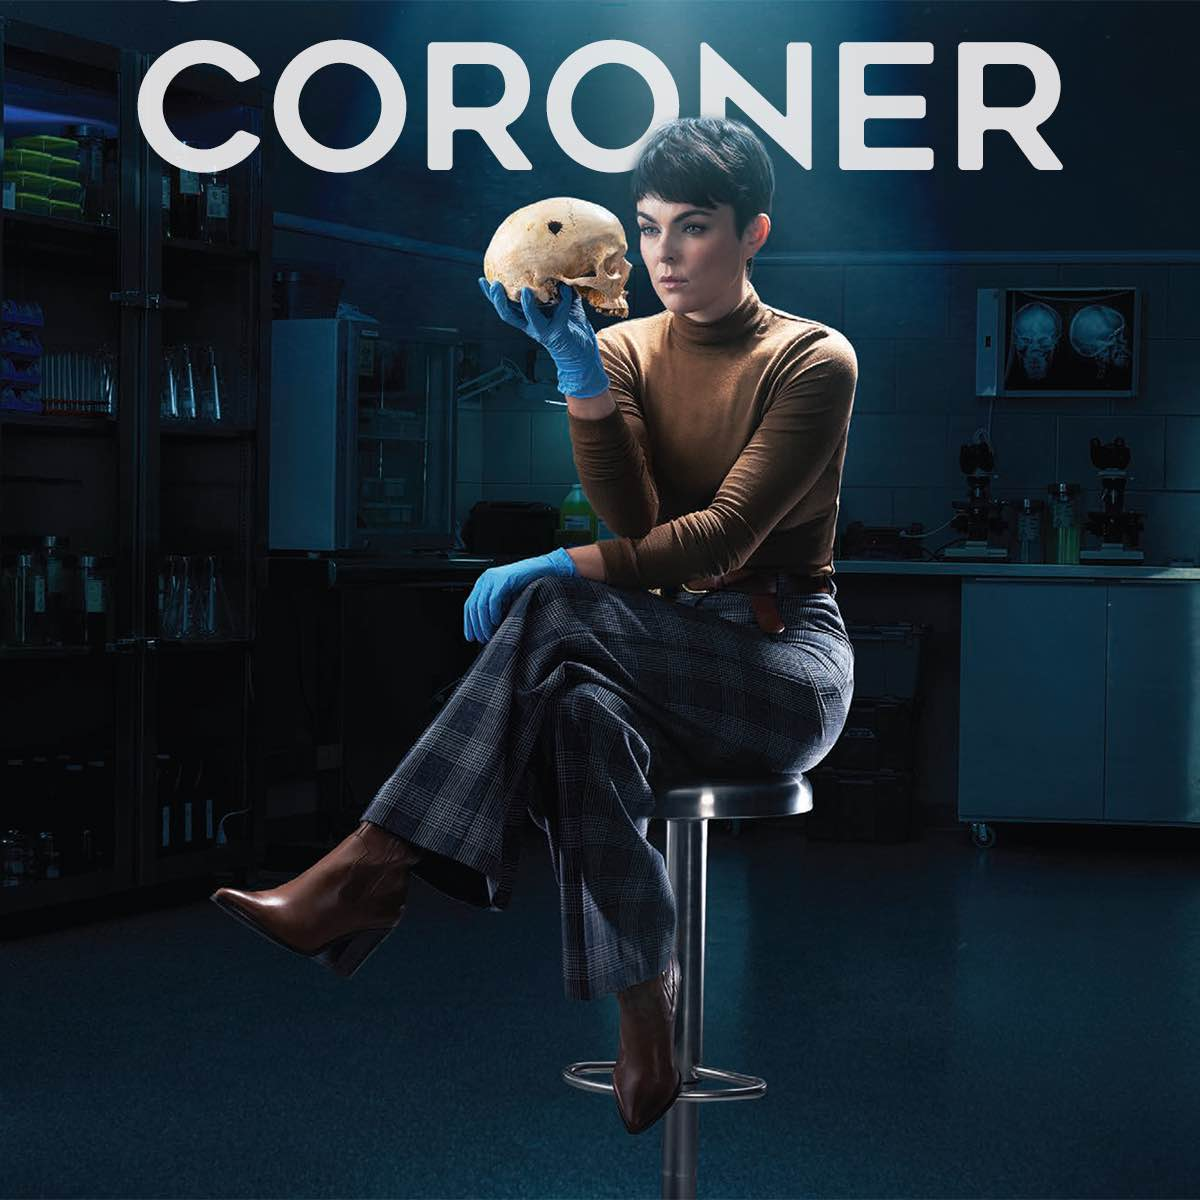 'Coroner Announces CBC Premiere' core news picture